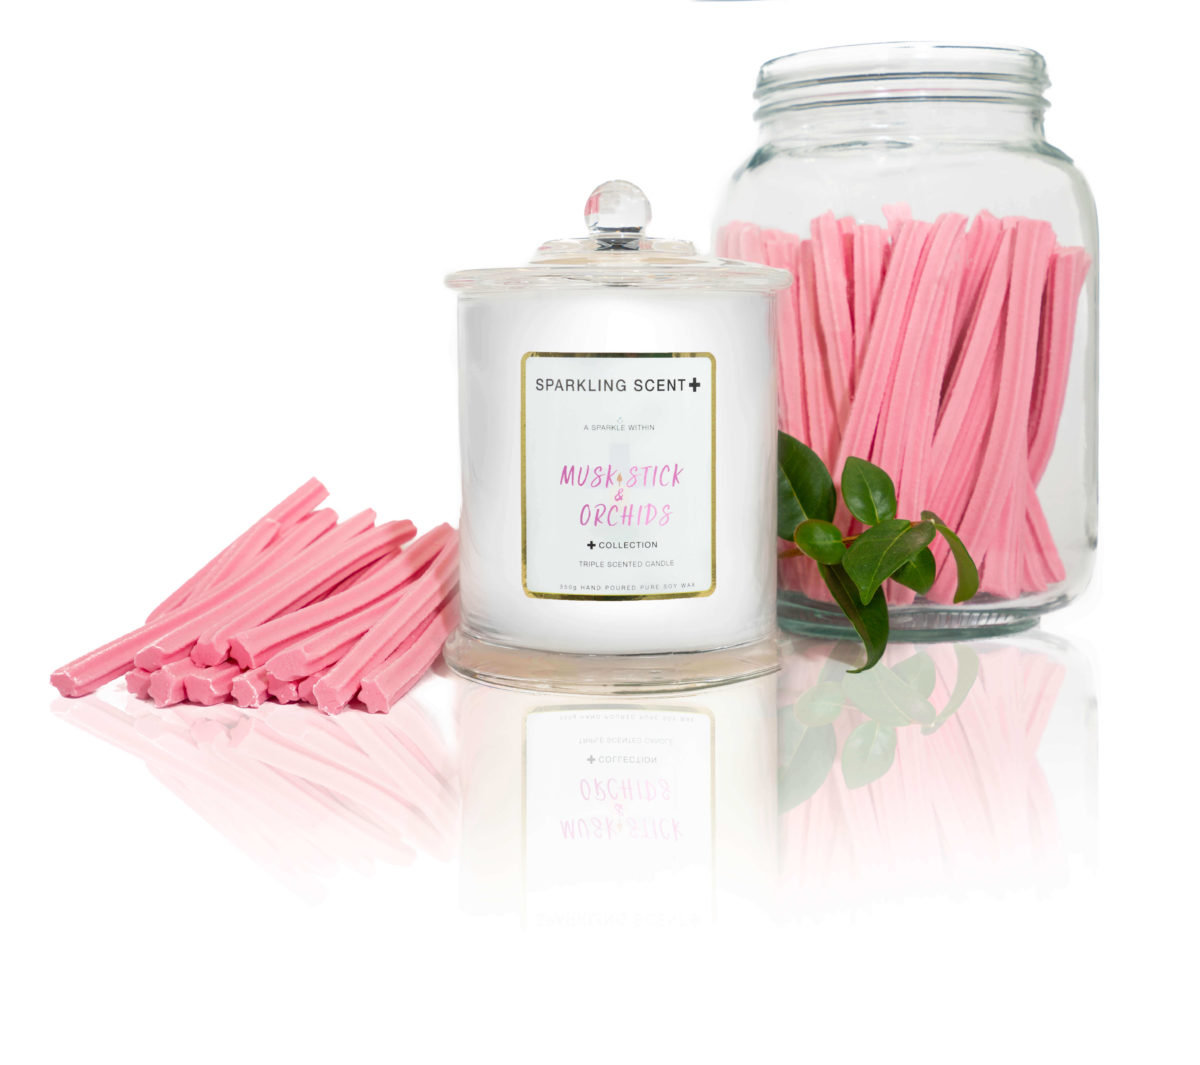 Glossy white shining French Gala Candle with a gold and white sticker. Surrounded with what you can imagine from the scent, pink Musk Sticks-in a jar swell as Orchids.